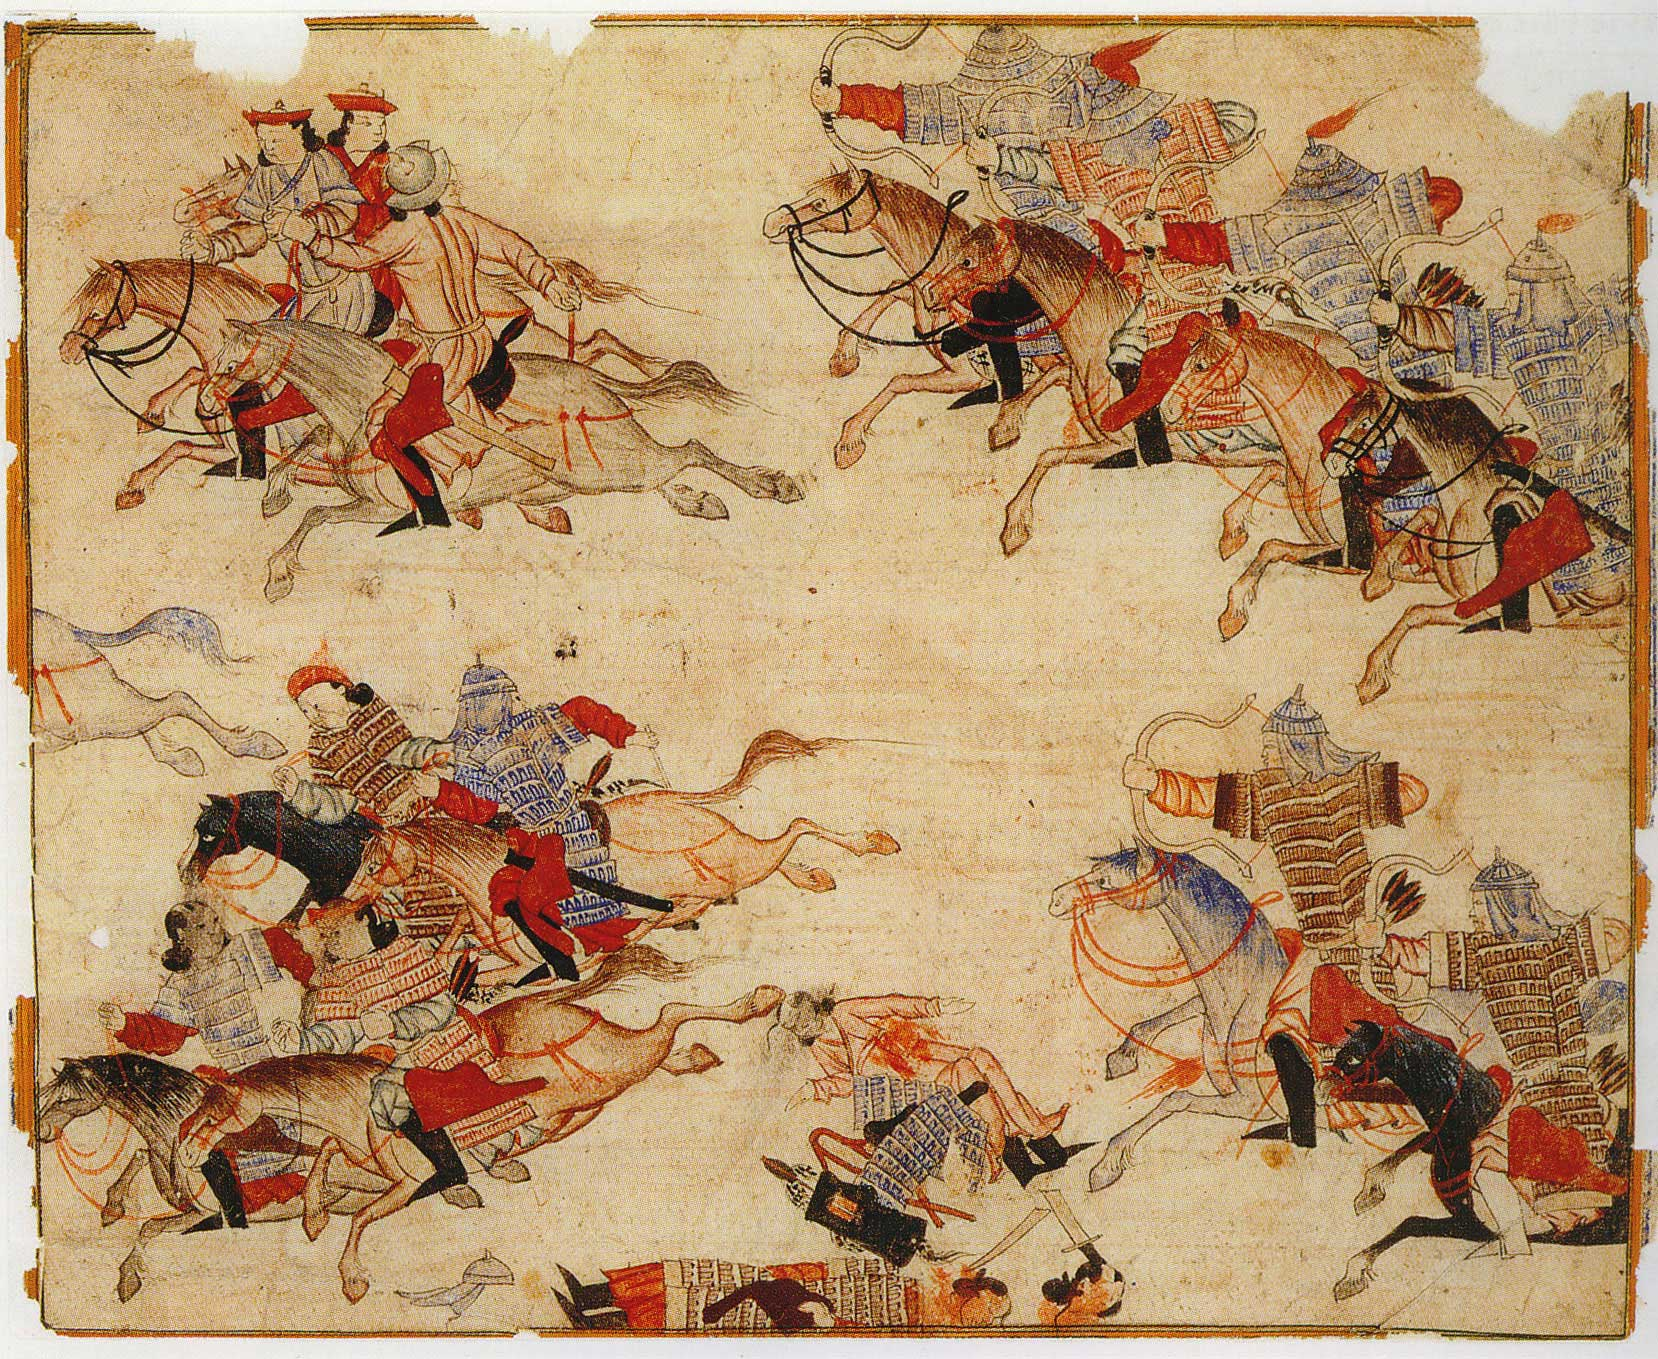 genghis khan: military hero essay 08062014  the art of war under chinggis qahan (genghis khan)  this campaign is regarded by military historians as one of the most dramatic outflanking manoeuvres.